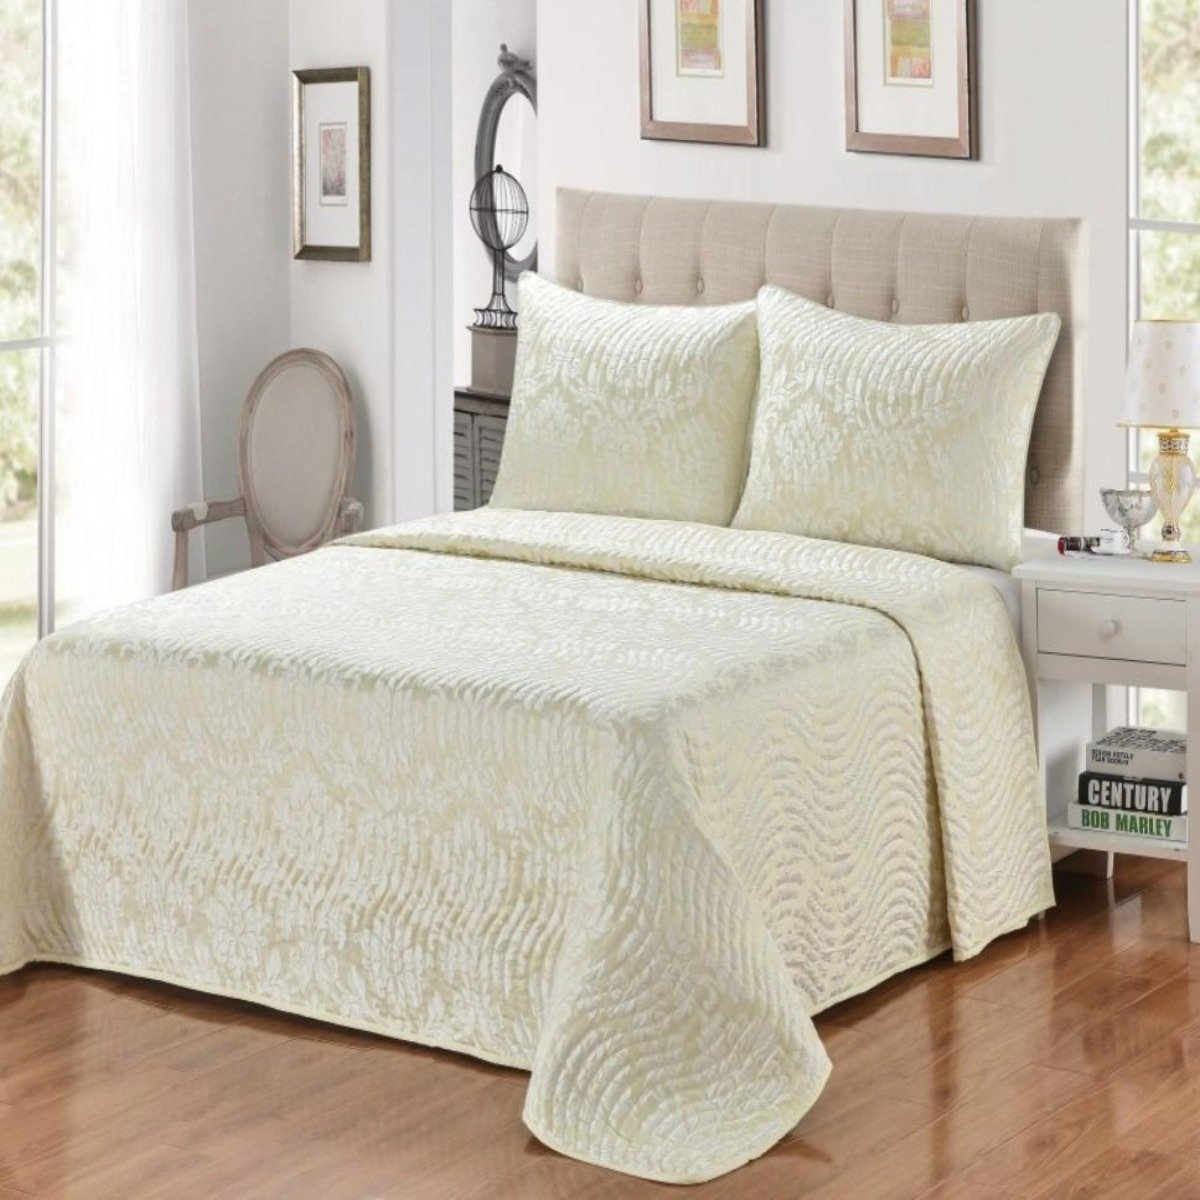 Renee 3-Piece Jacquard Bedspread Set